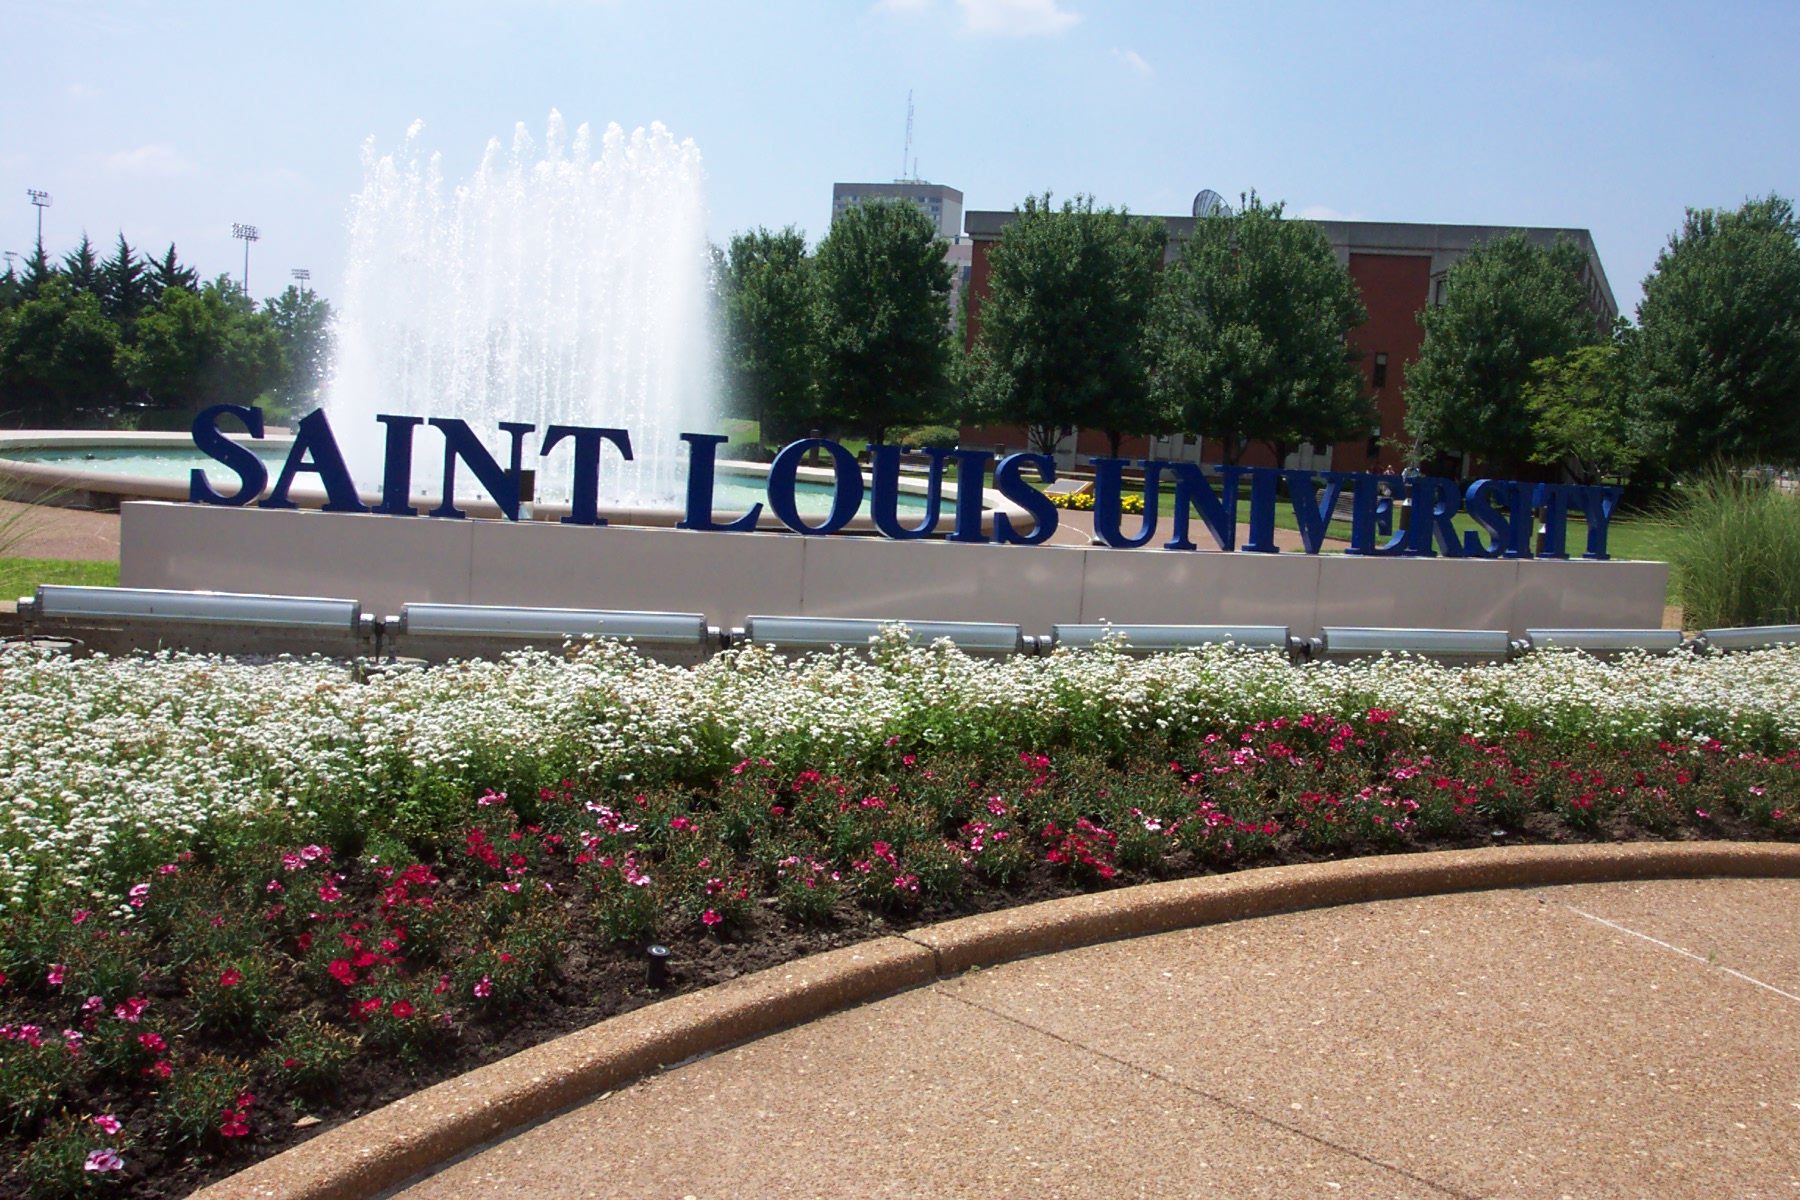 Saint Louis University. Heavenly Scent Cleaning Slingbox App For Ipad. Mortgage Protection Ireland Seo Blog Network. Byrne Criminal Justice Innovation Program. Low Interest Business Credit Cards. Laparoscopic Back Surgery Canada Pest Control. Masters Degree In Human Resources. Hubbardton Forge Lights Park School Brookline. North Carolina Beach Rental Homes